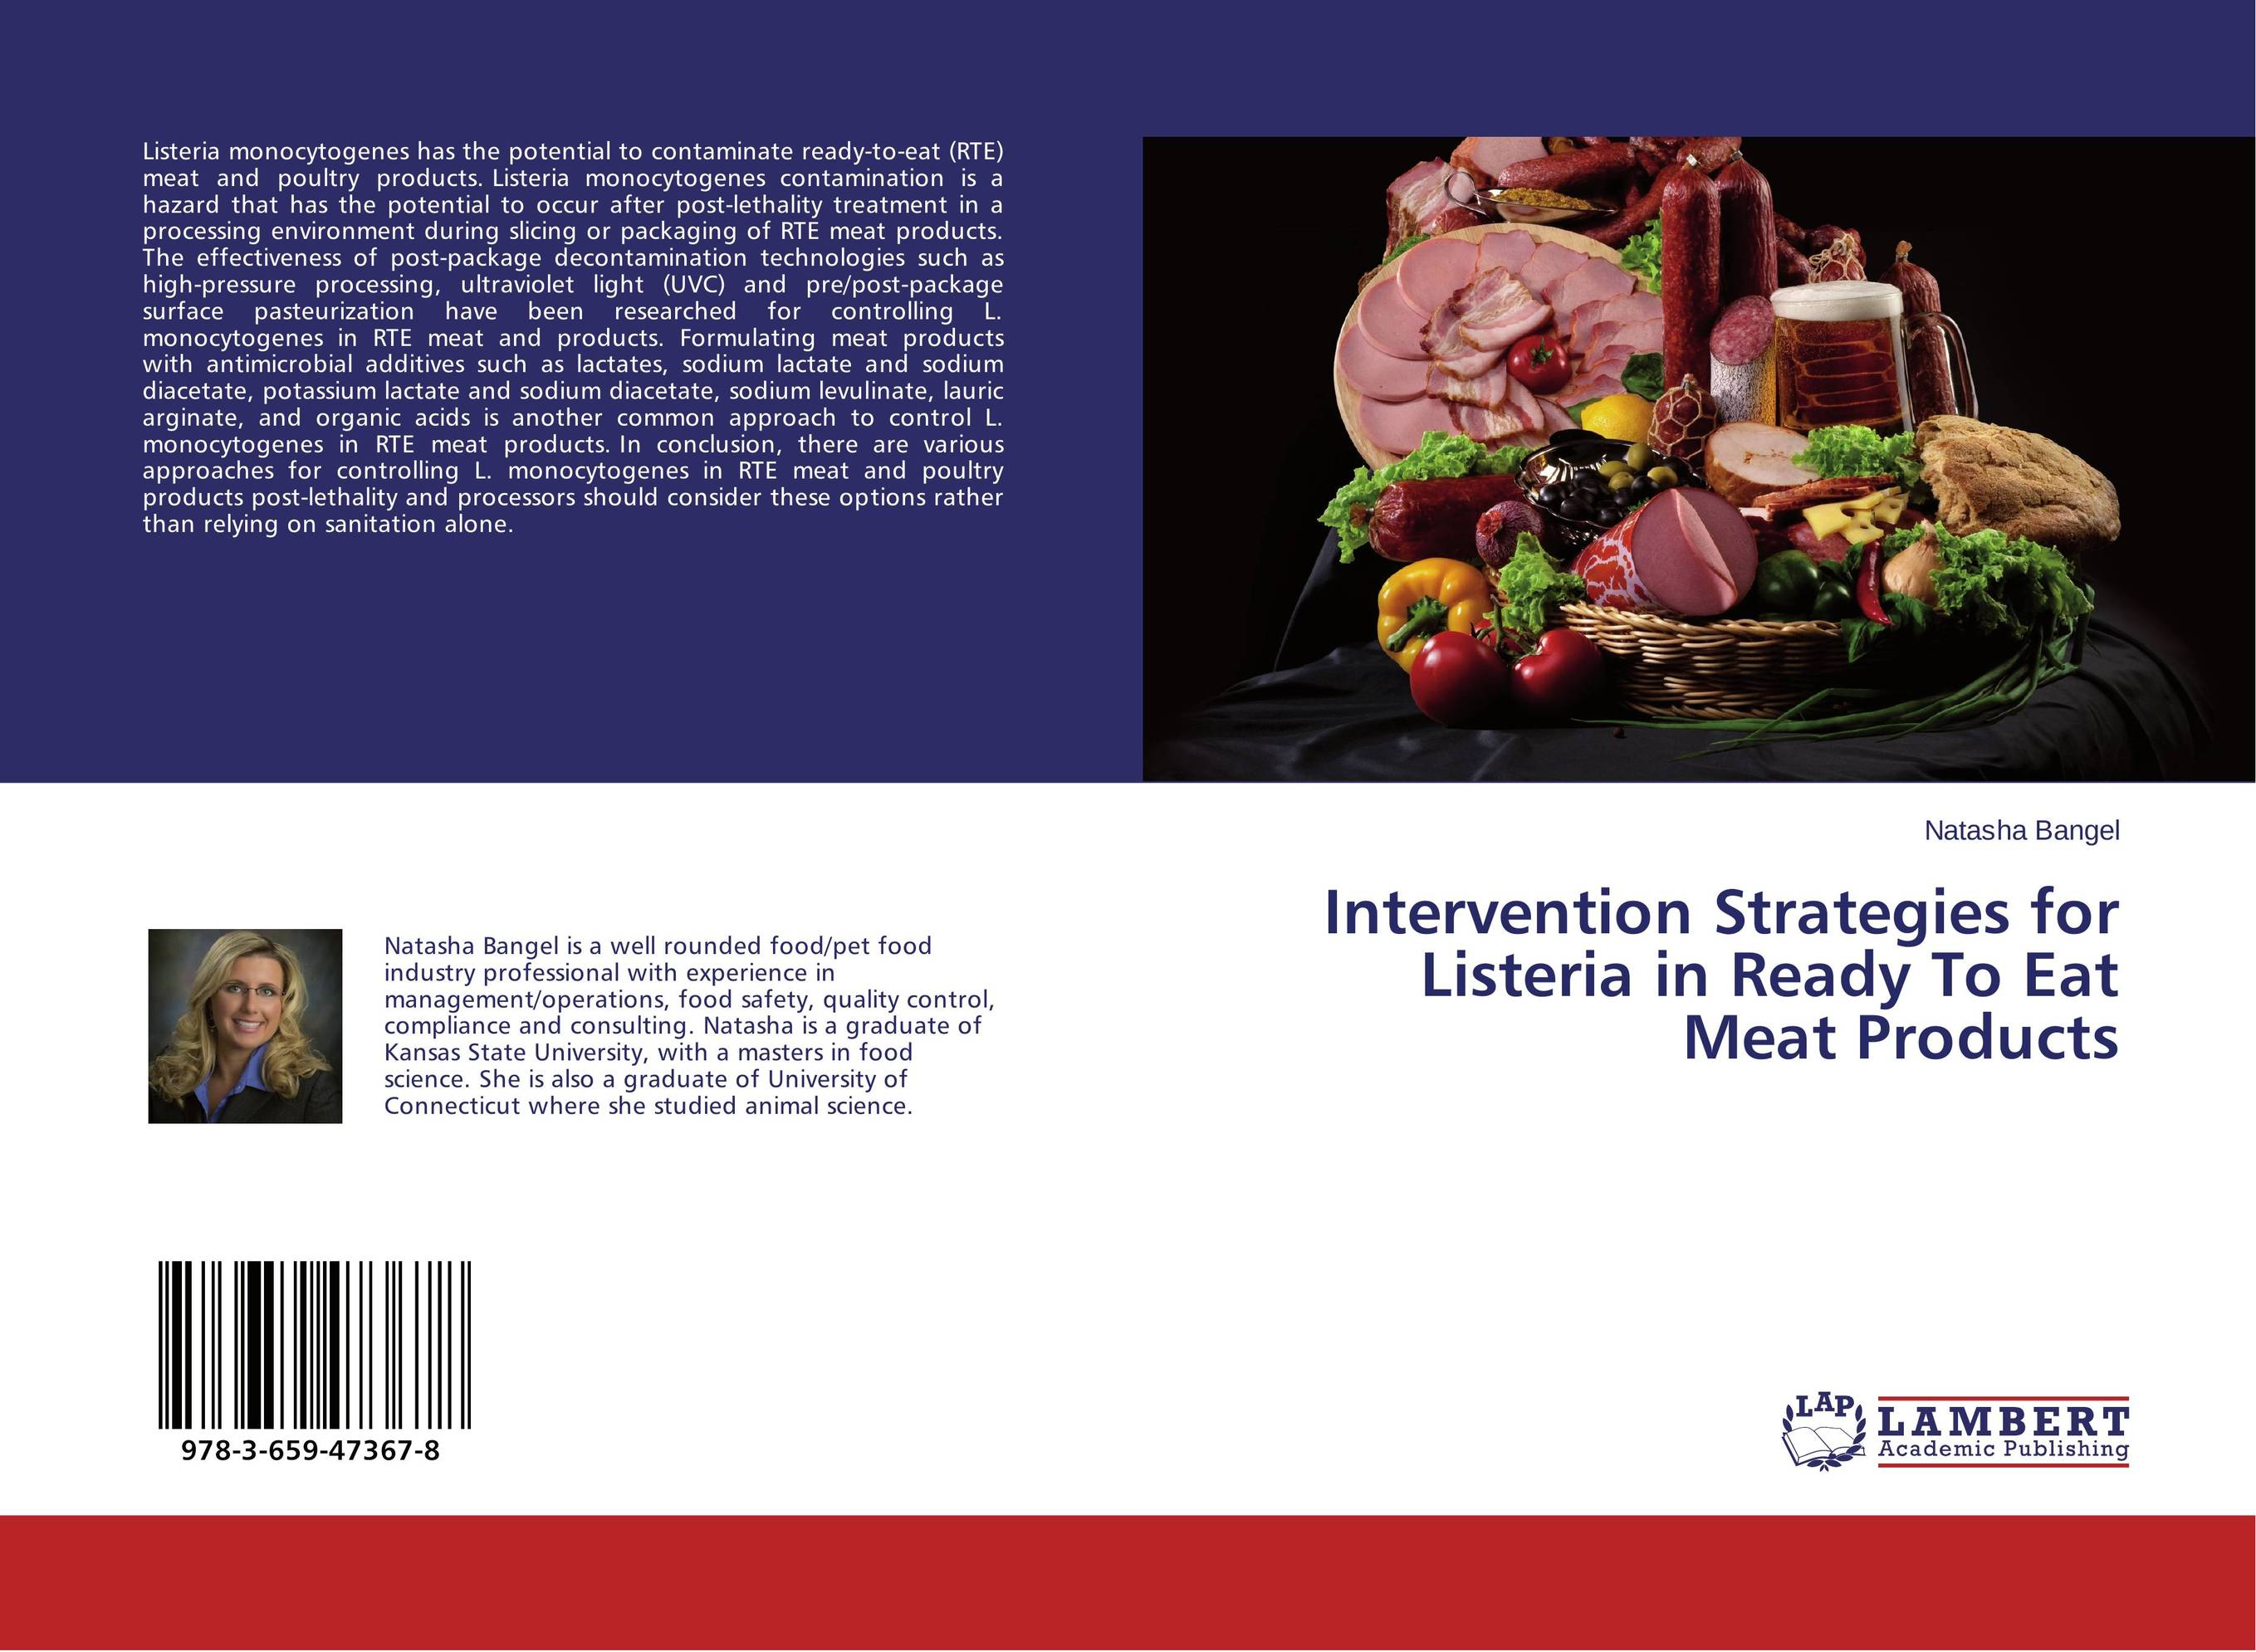 Intervention Strategies for Listeria in Ready To Eat Meat Products microbial biofilms of listeria monocytogenes